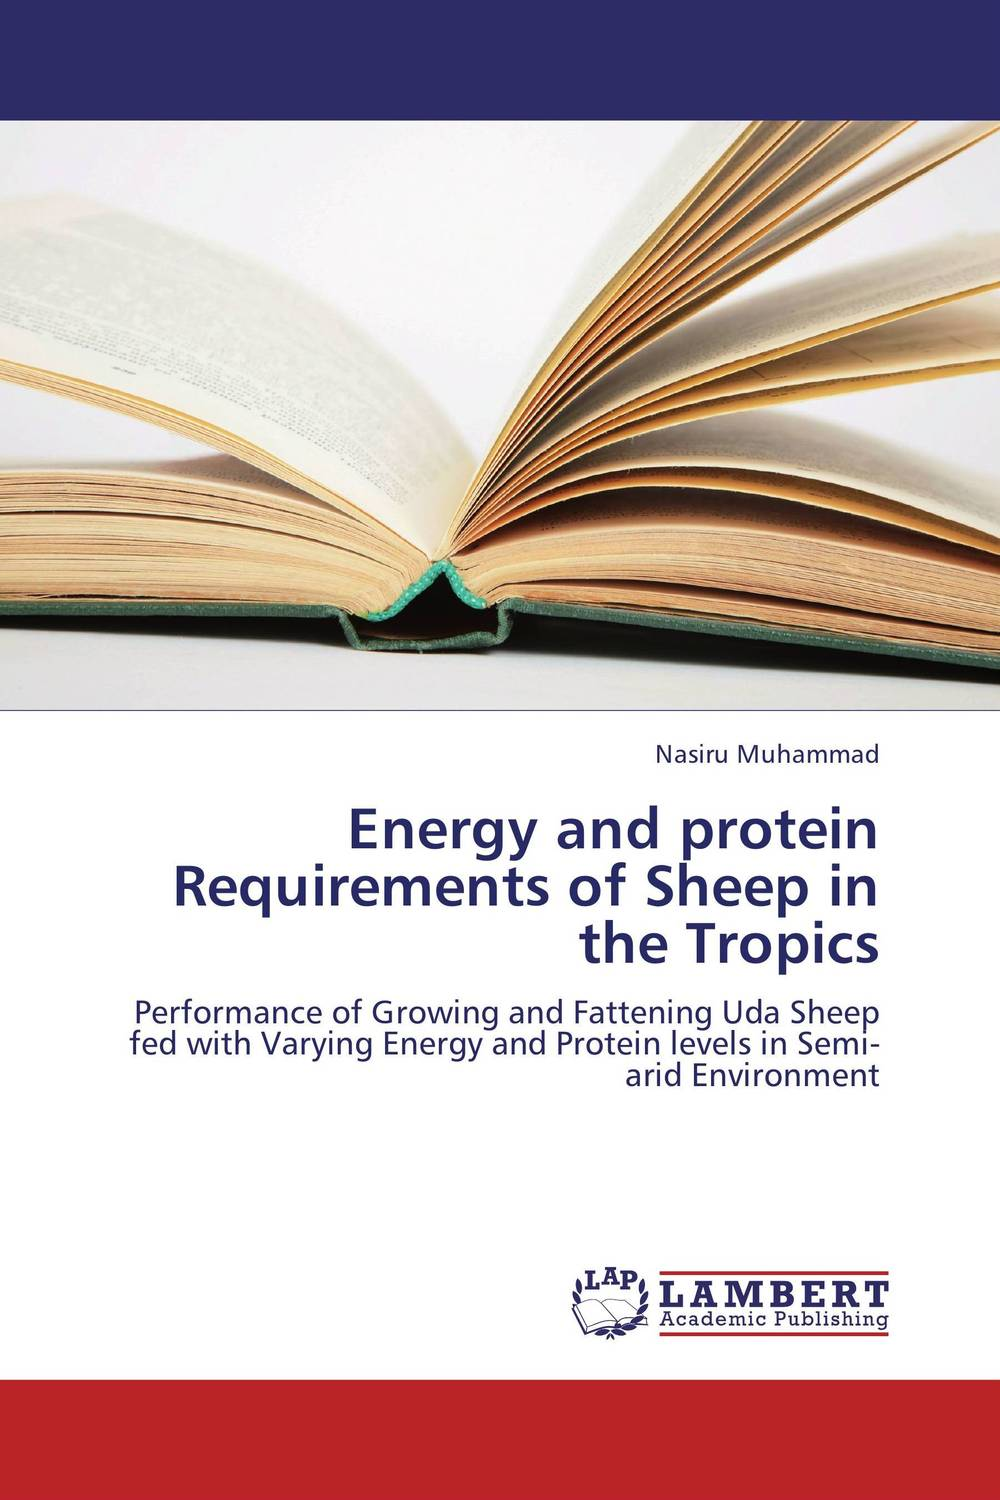 Energy and protein Requirements of Sheep in the Tropics